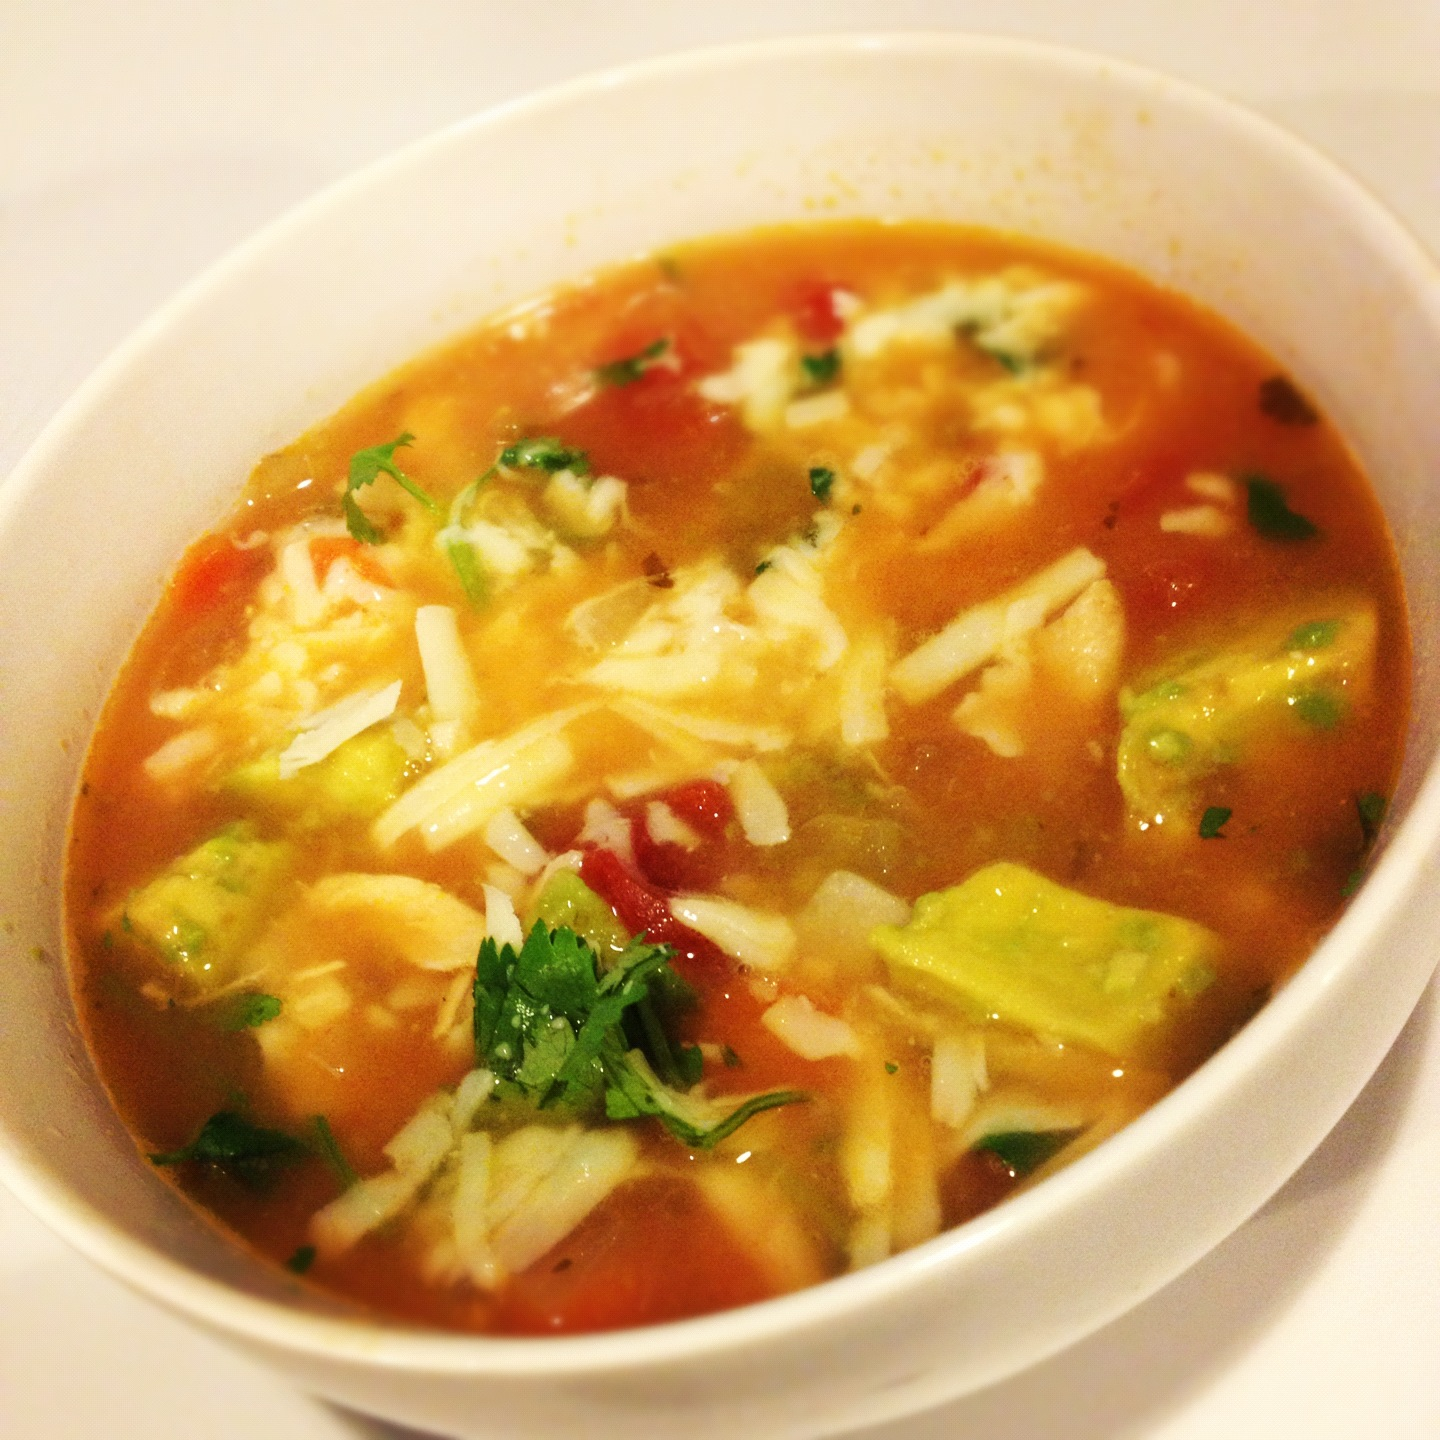 la denver dish.: Chicken Tortilla Soup